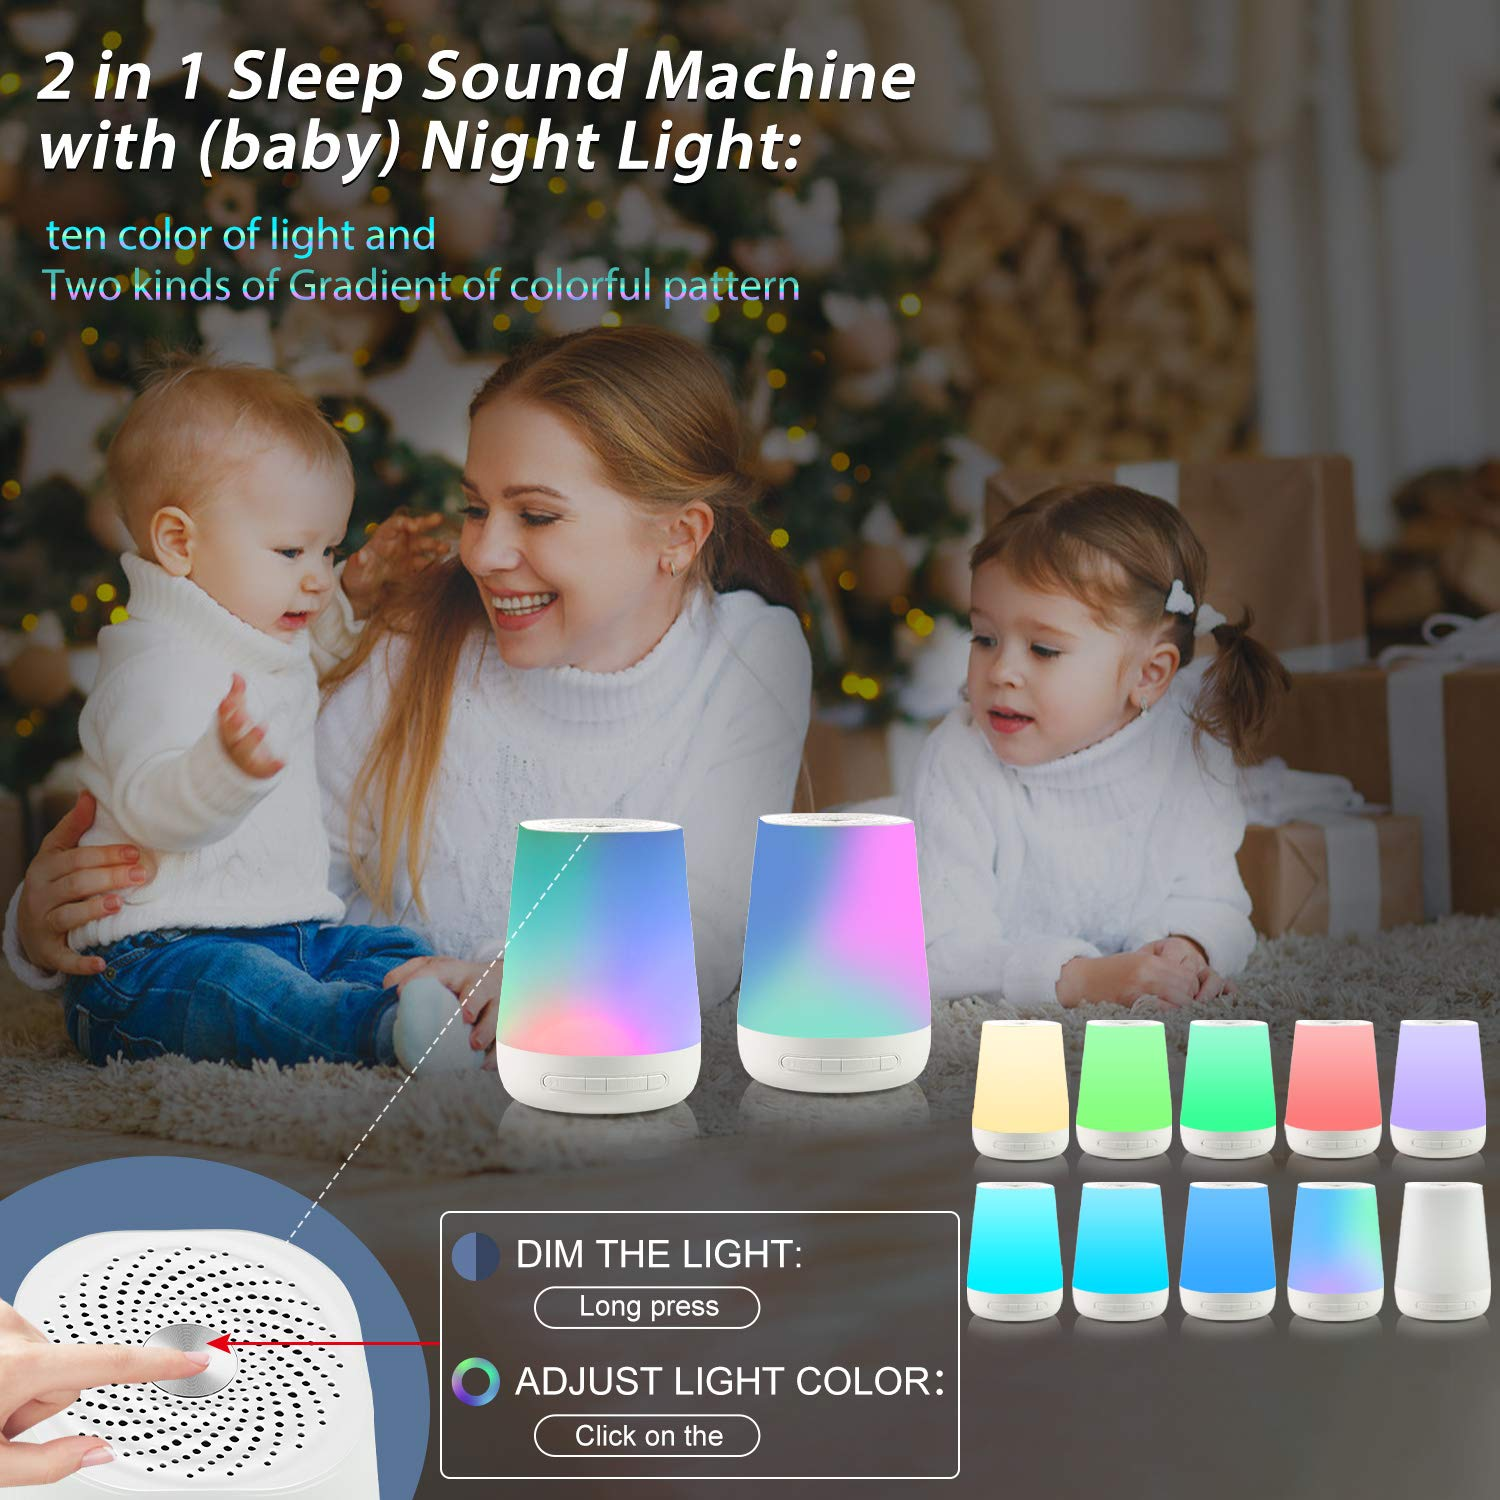 White Noise Machine VanSmaGo Sleep Sound Machine with Baby Night Light+Rechargeable Battery,28 Non-Looping Soothing Sound HiFi Accurate 32 Volume Adjustment,Portable Noise Cancelling Improve Sleeping